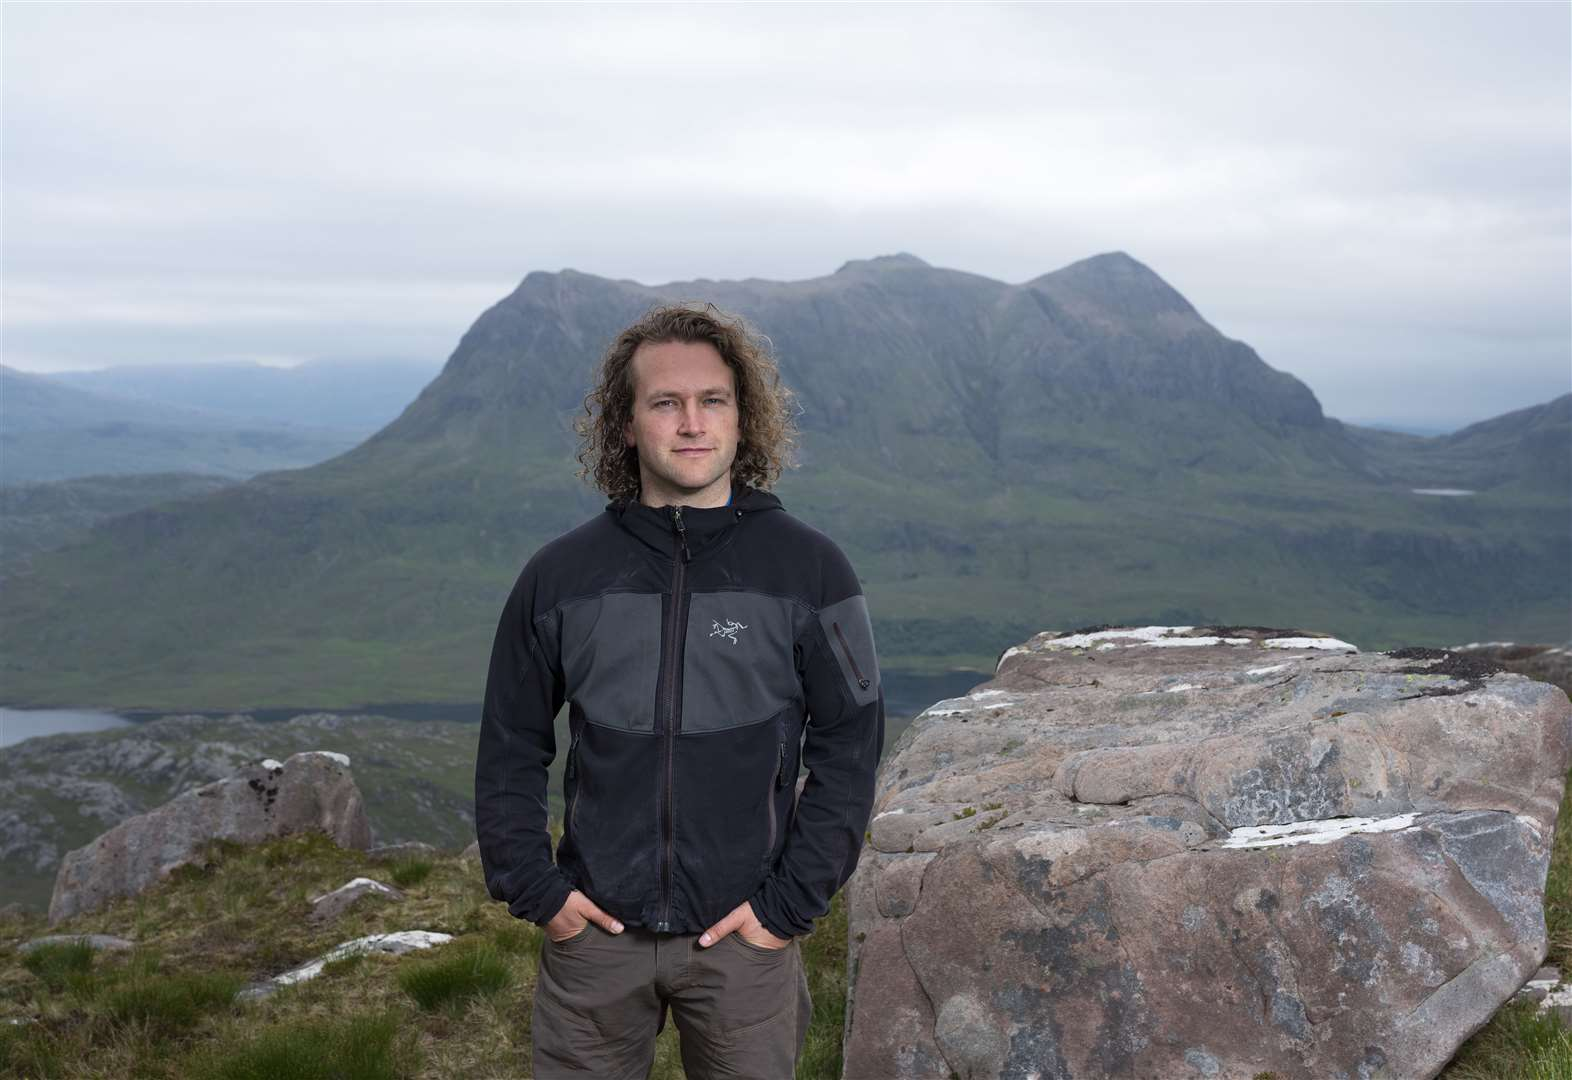 Highlands' big role in new thriller series